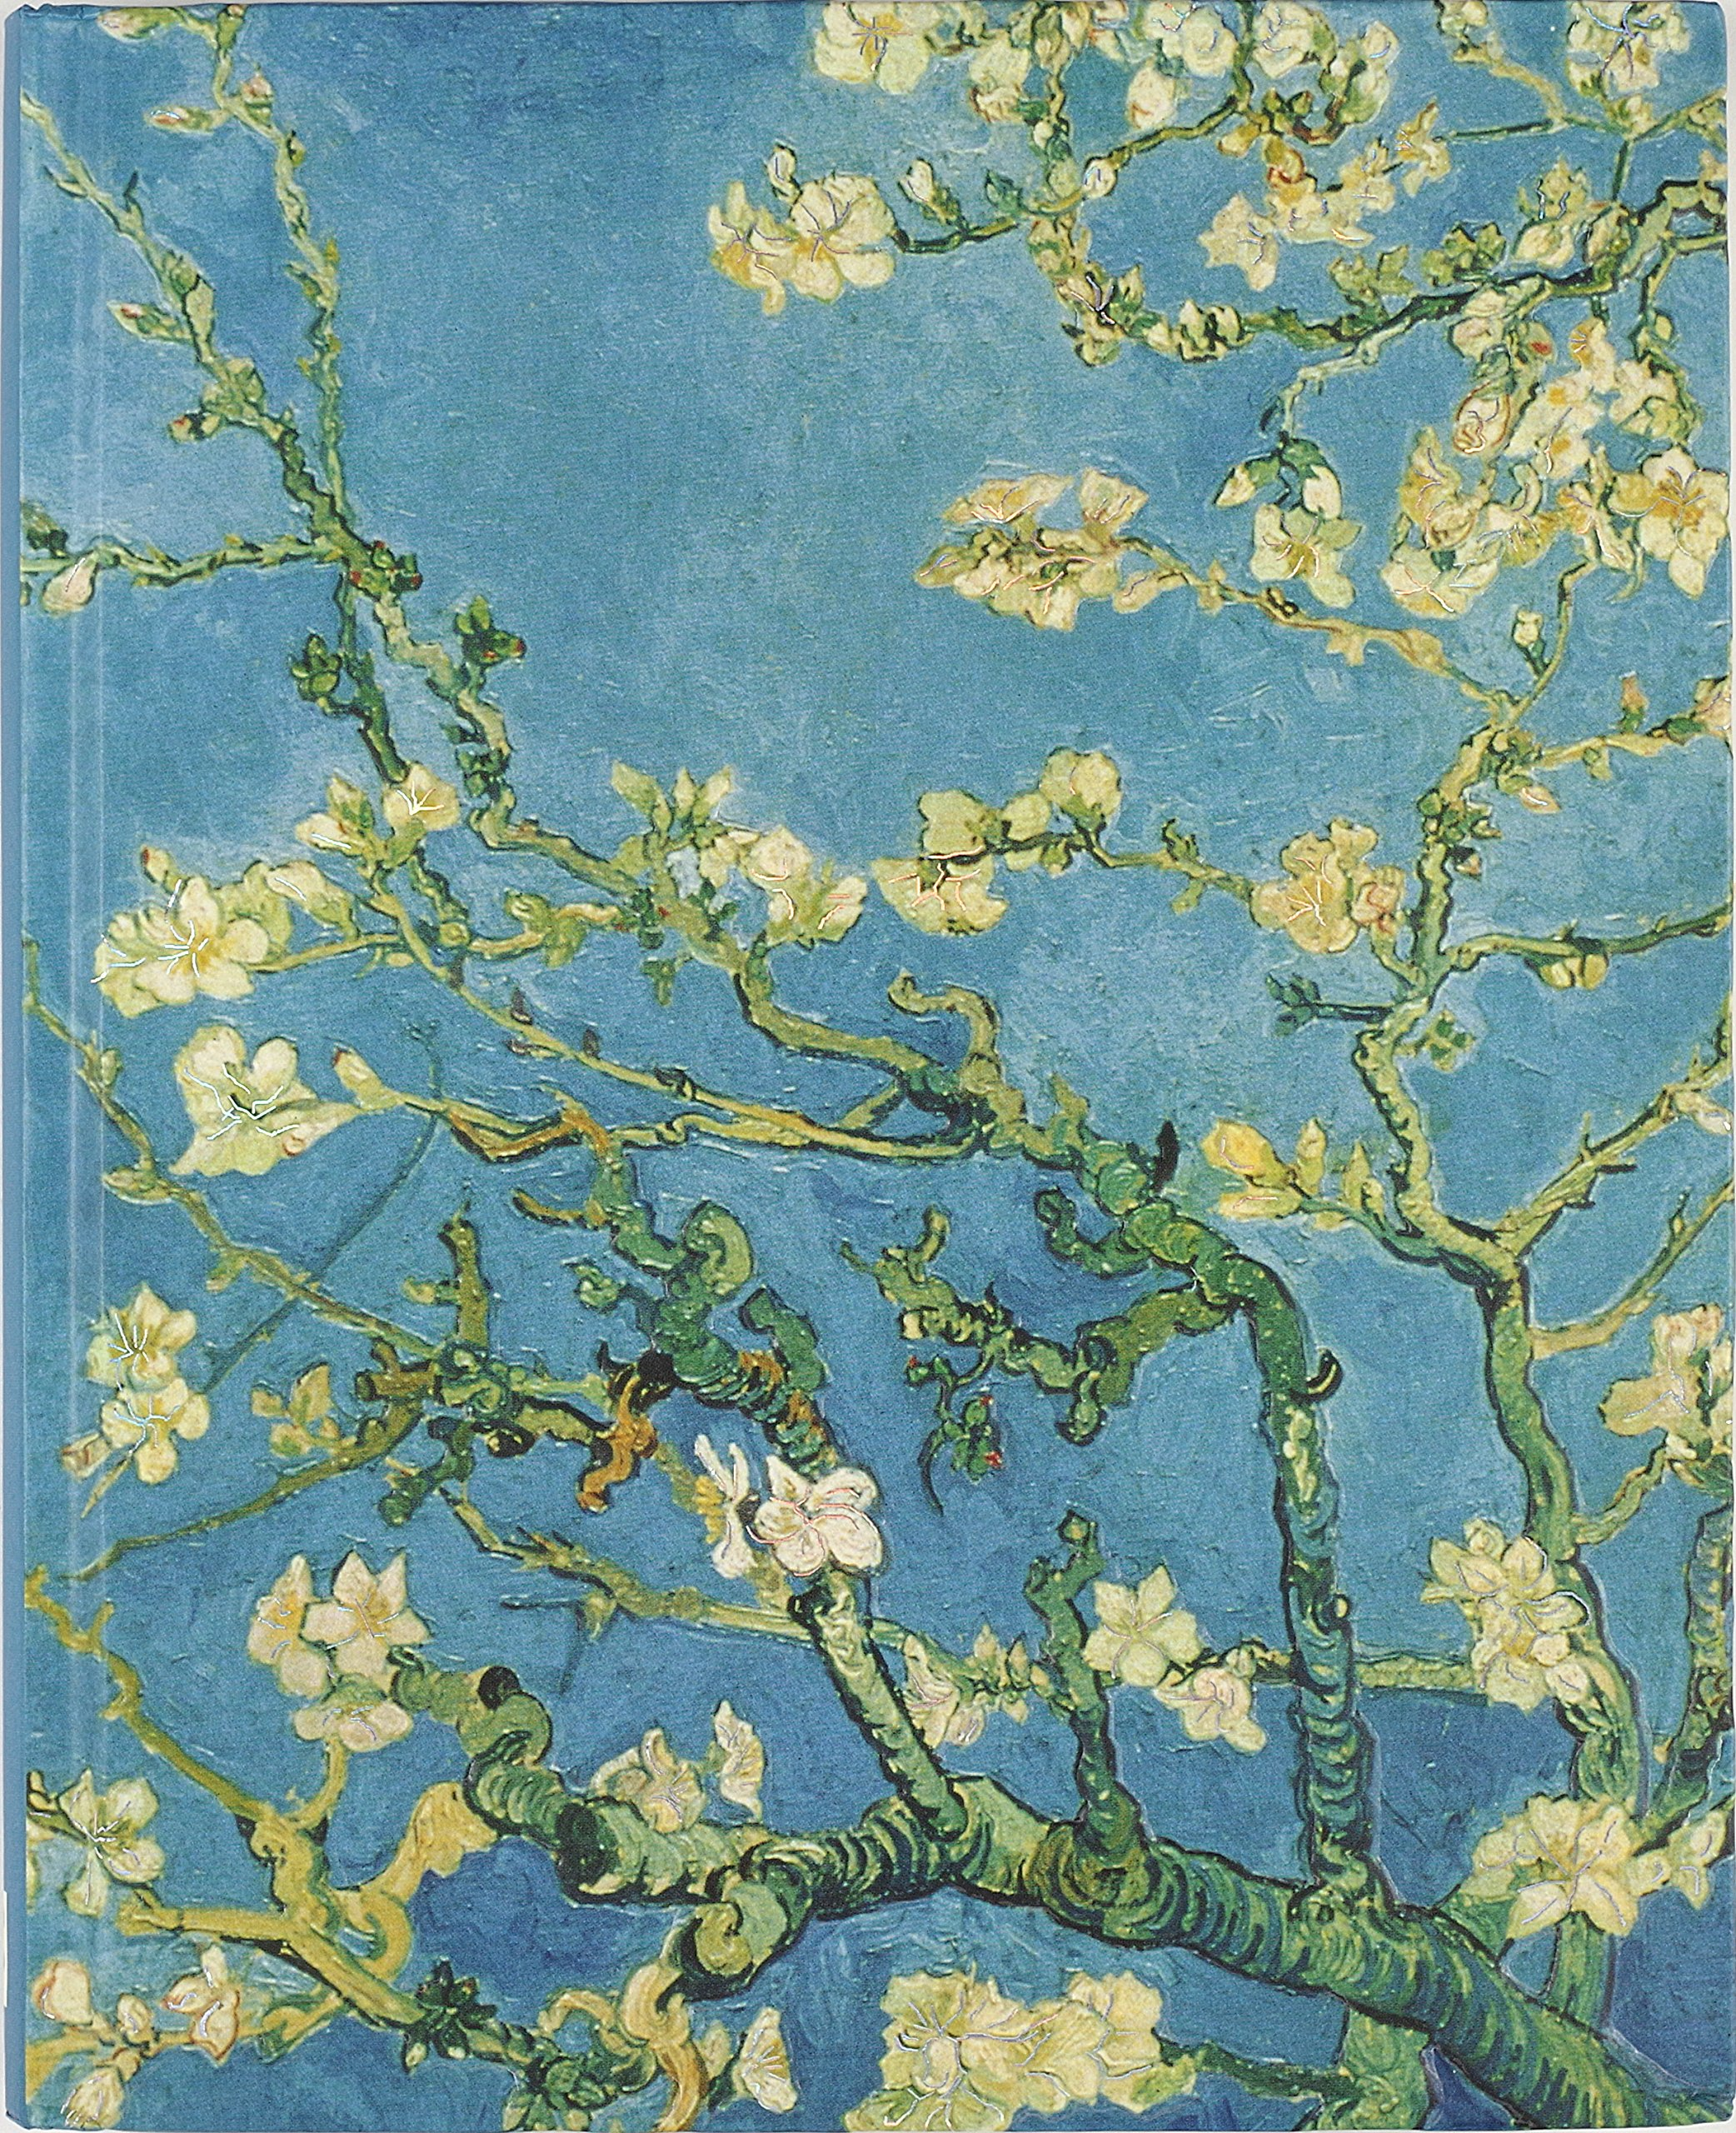 Almond Blossom Journal Notebook Diary product image